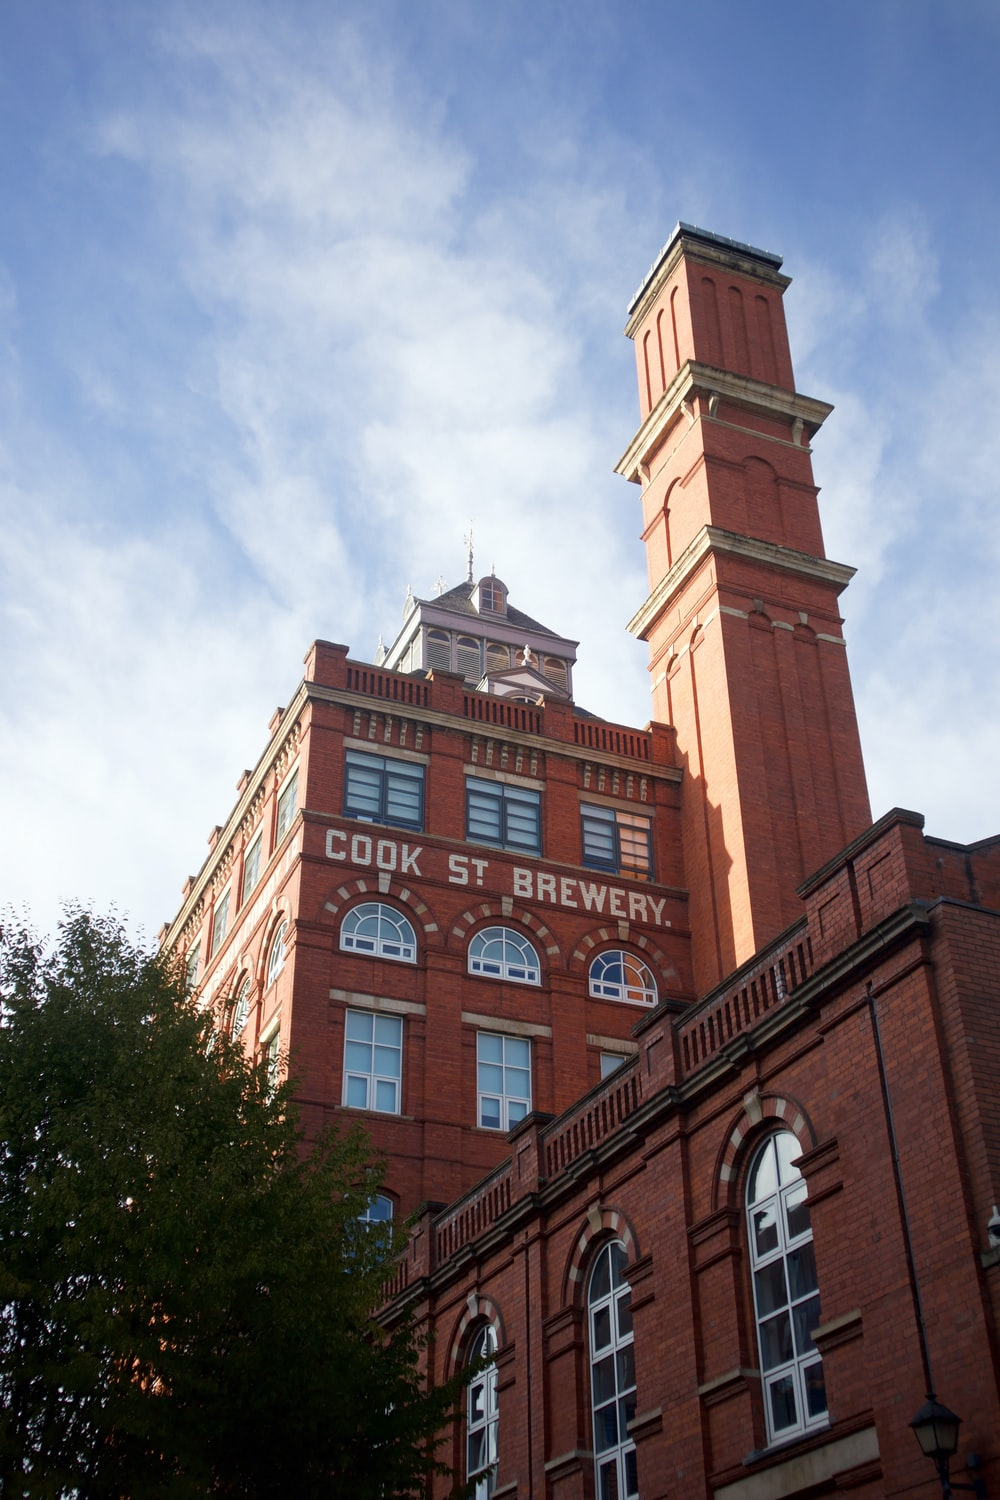 Cook St. Brewery building